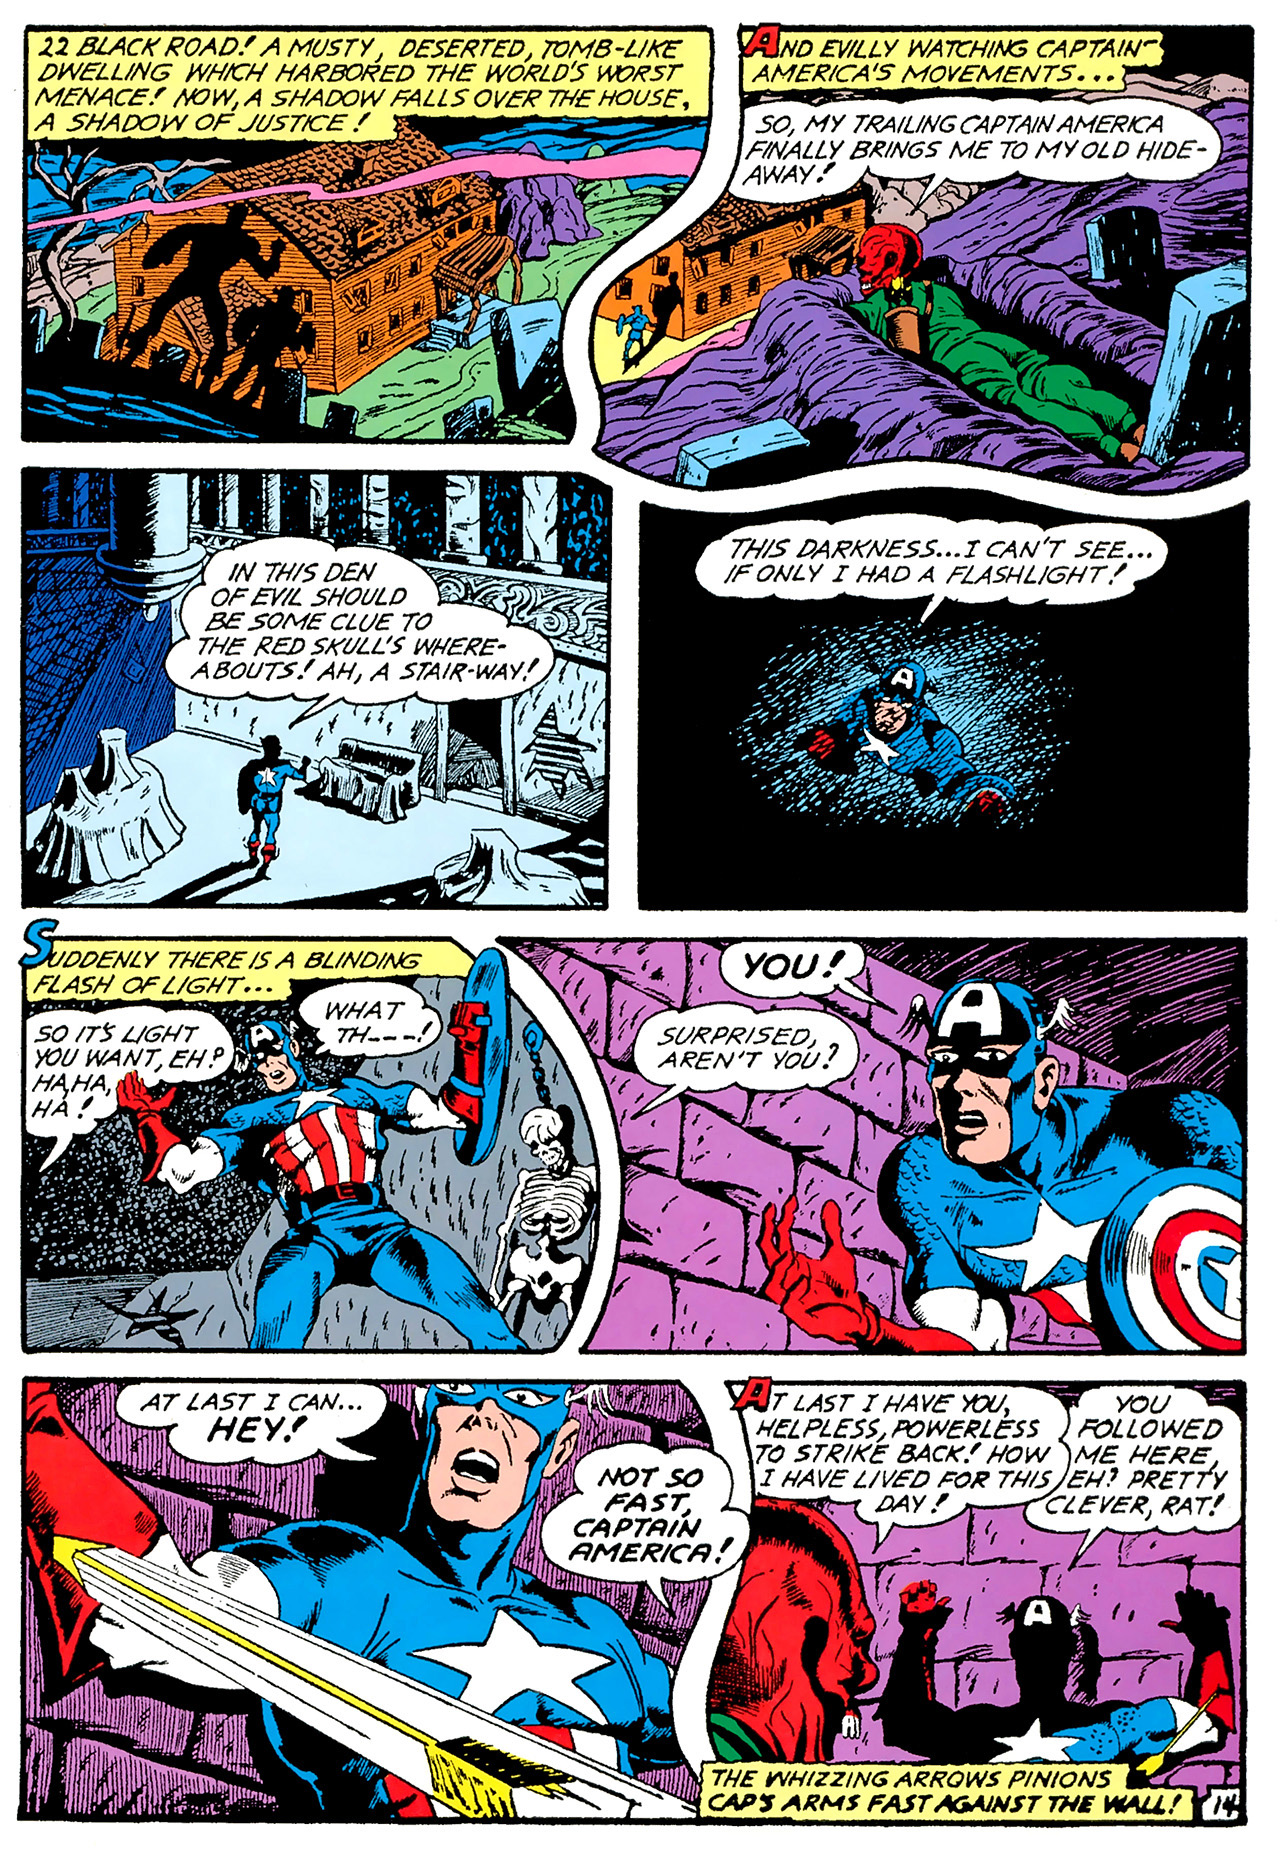 Captain America (1968) 600 Page 80